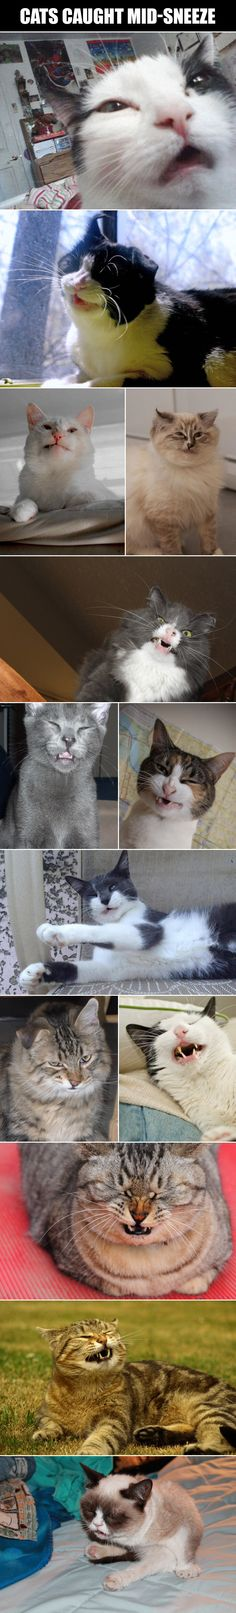 Cats about to sneeze